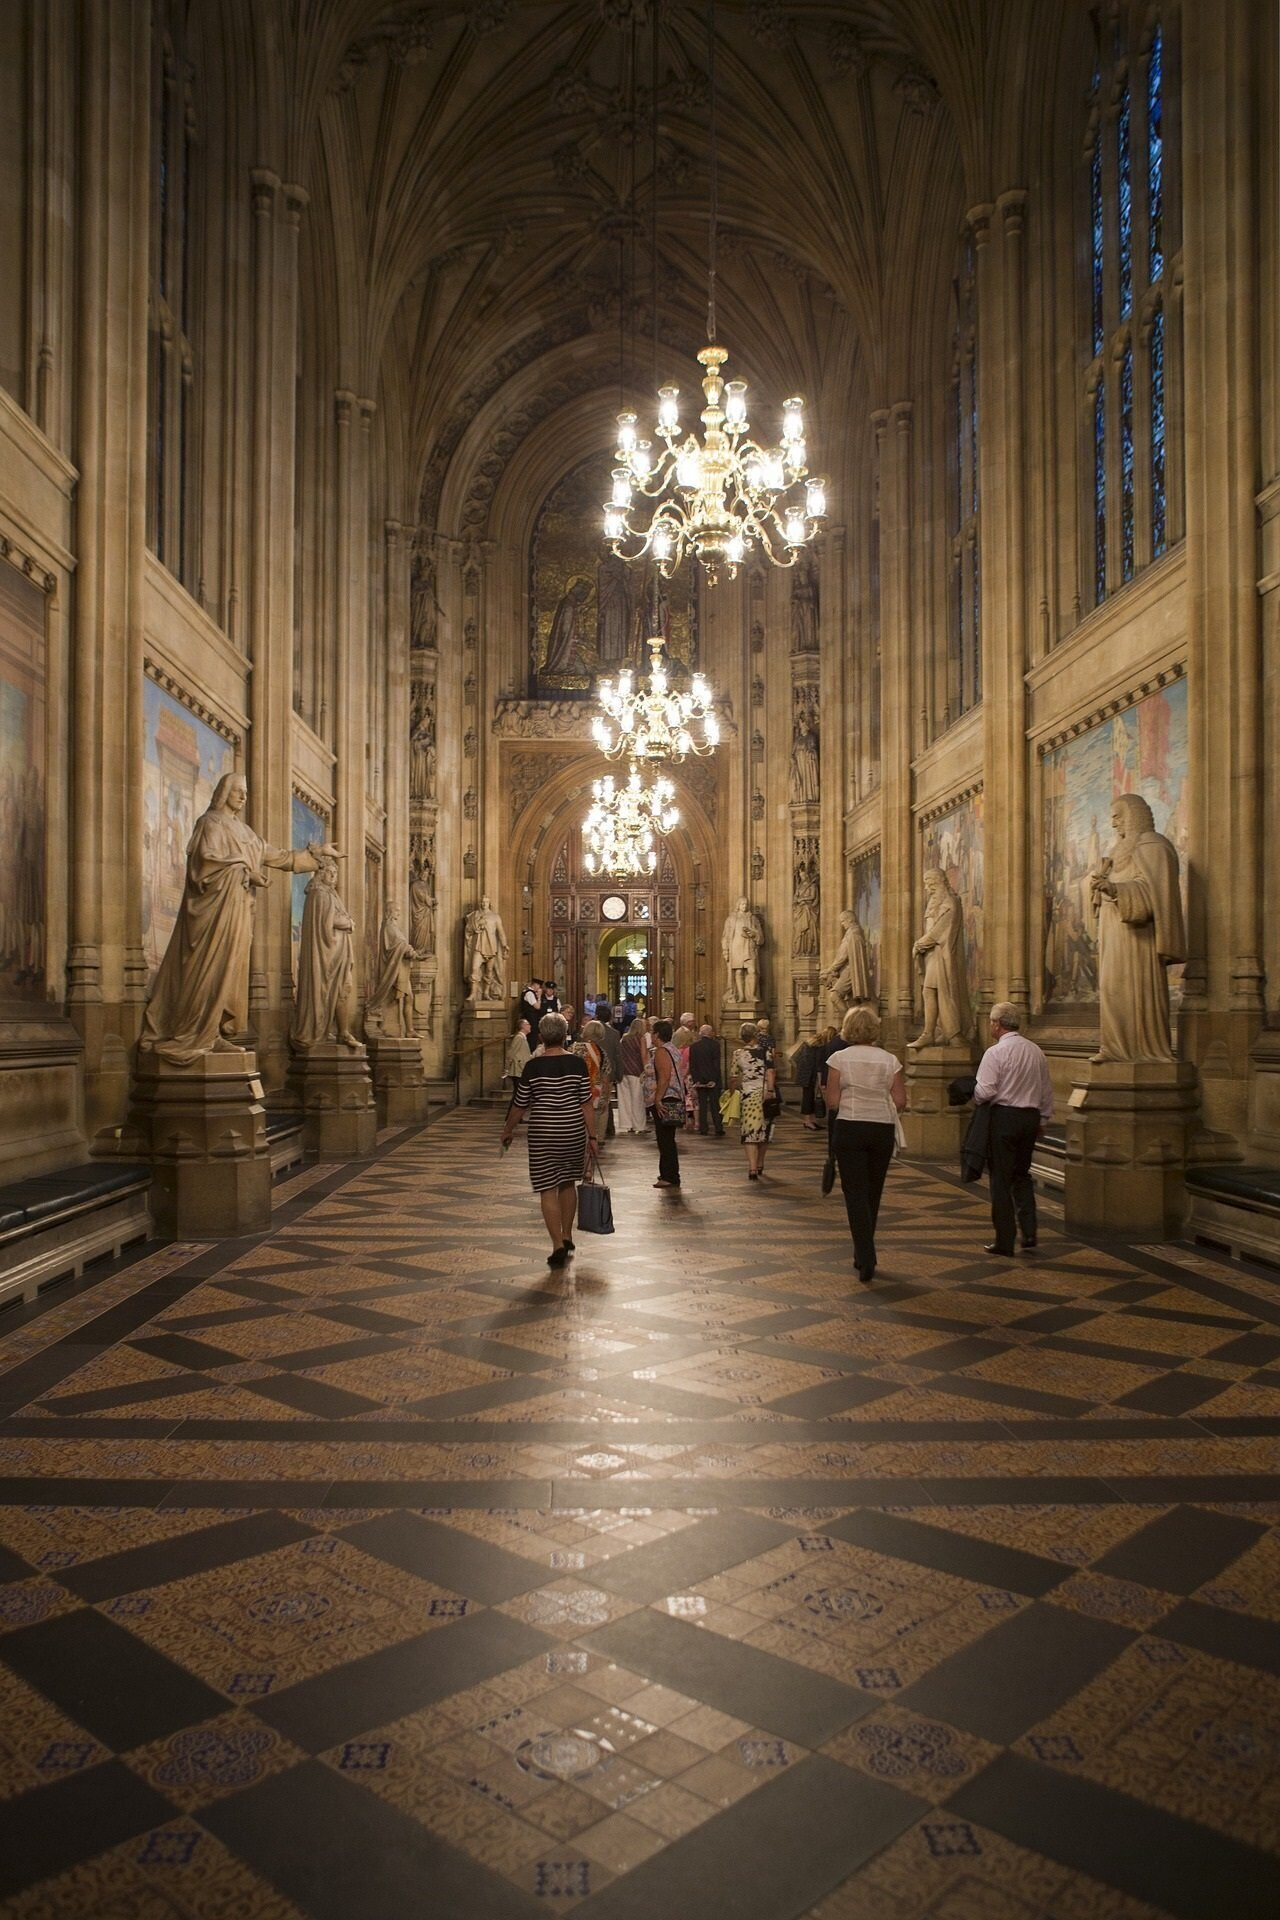 palace-of-westminster-1659289_1920